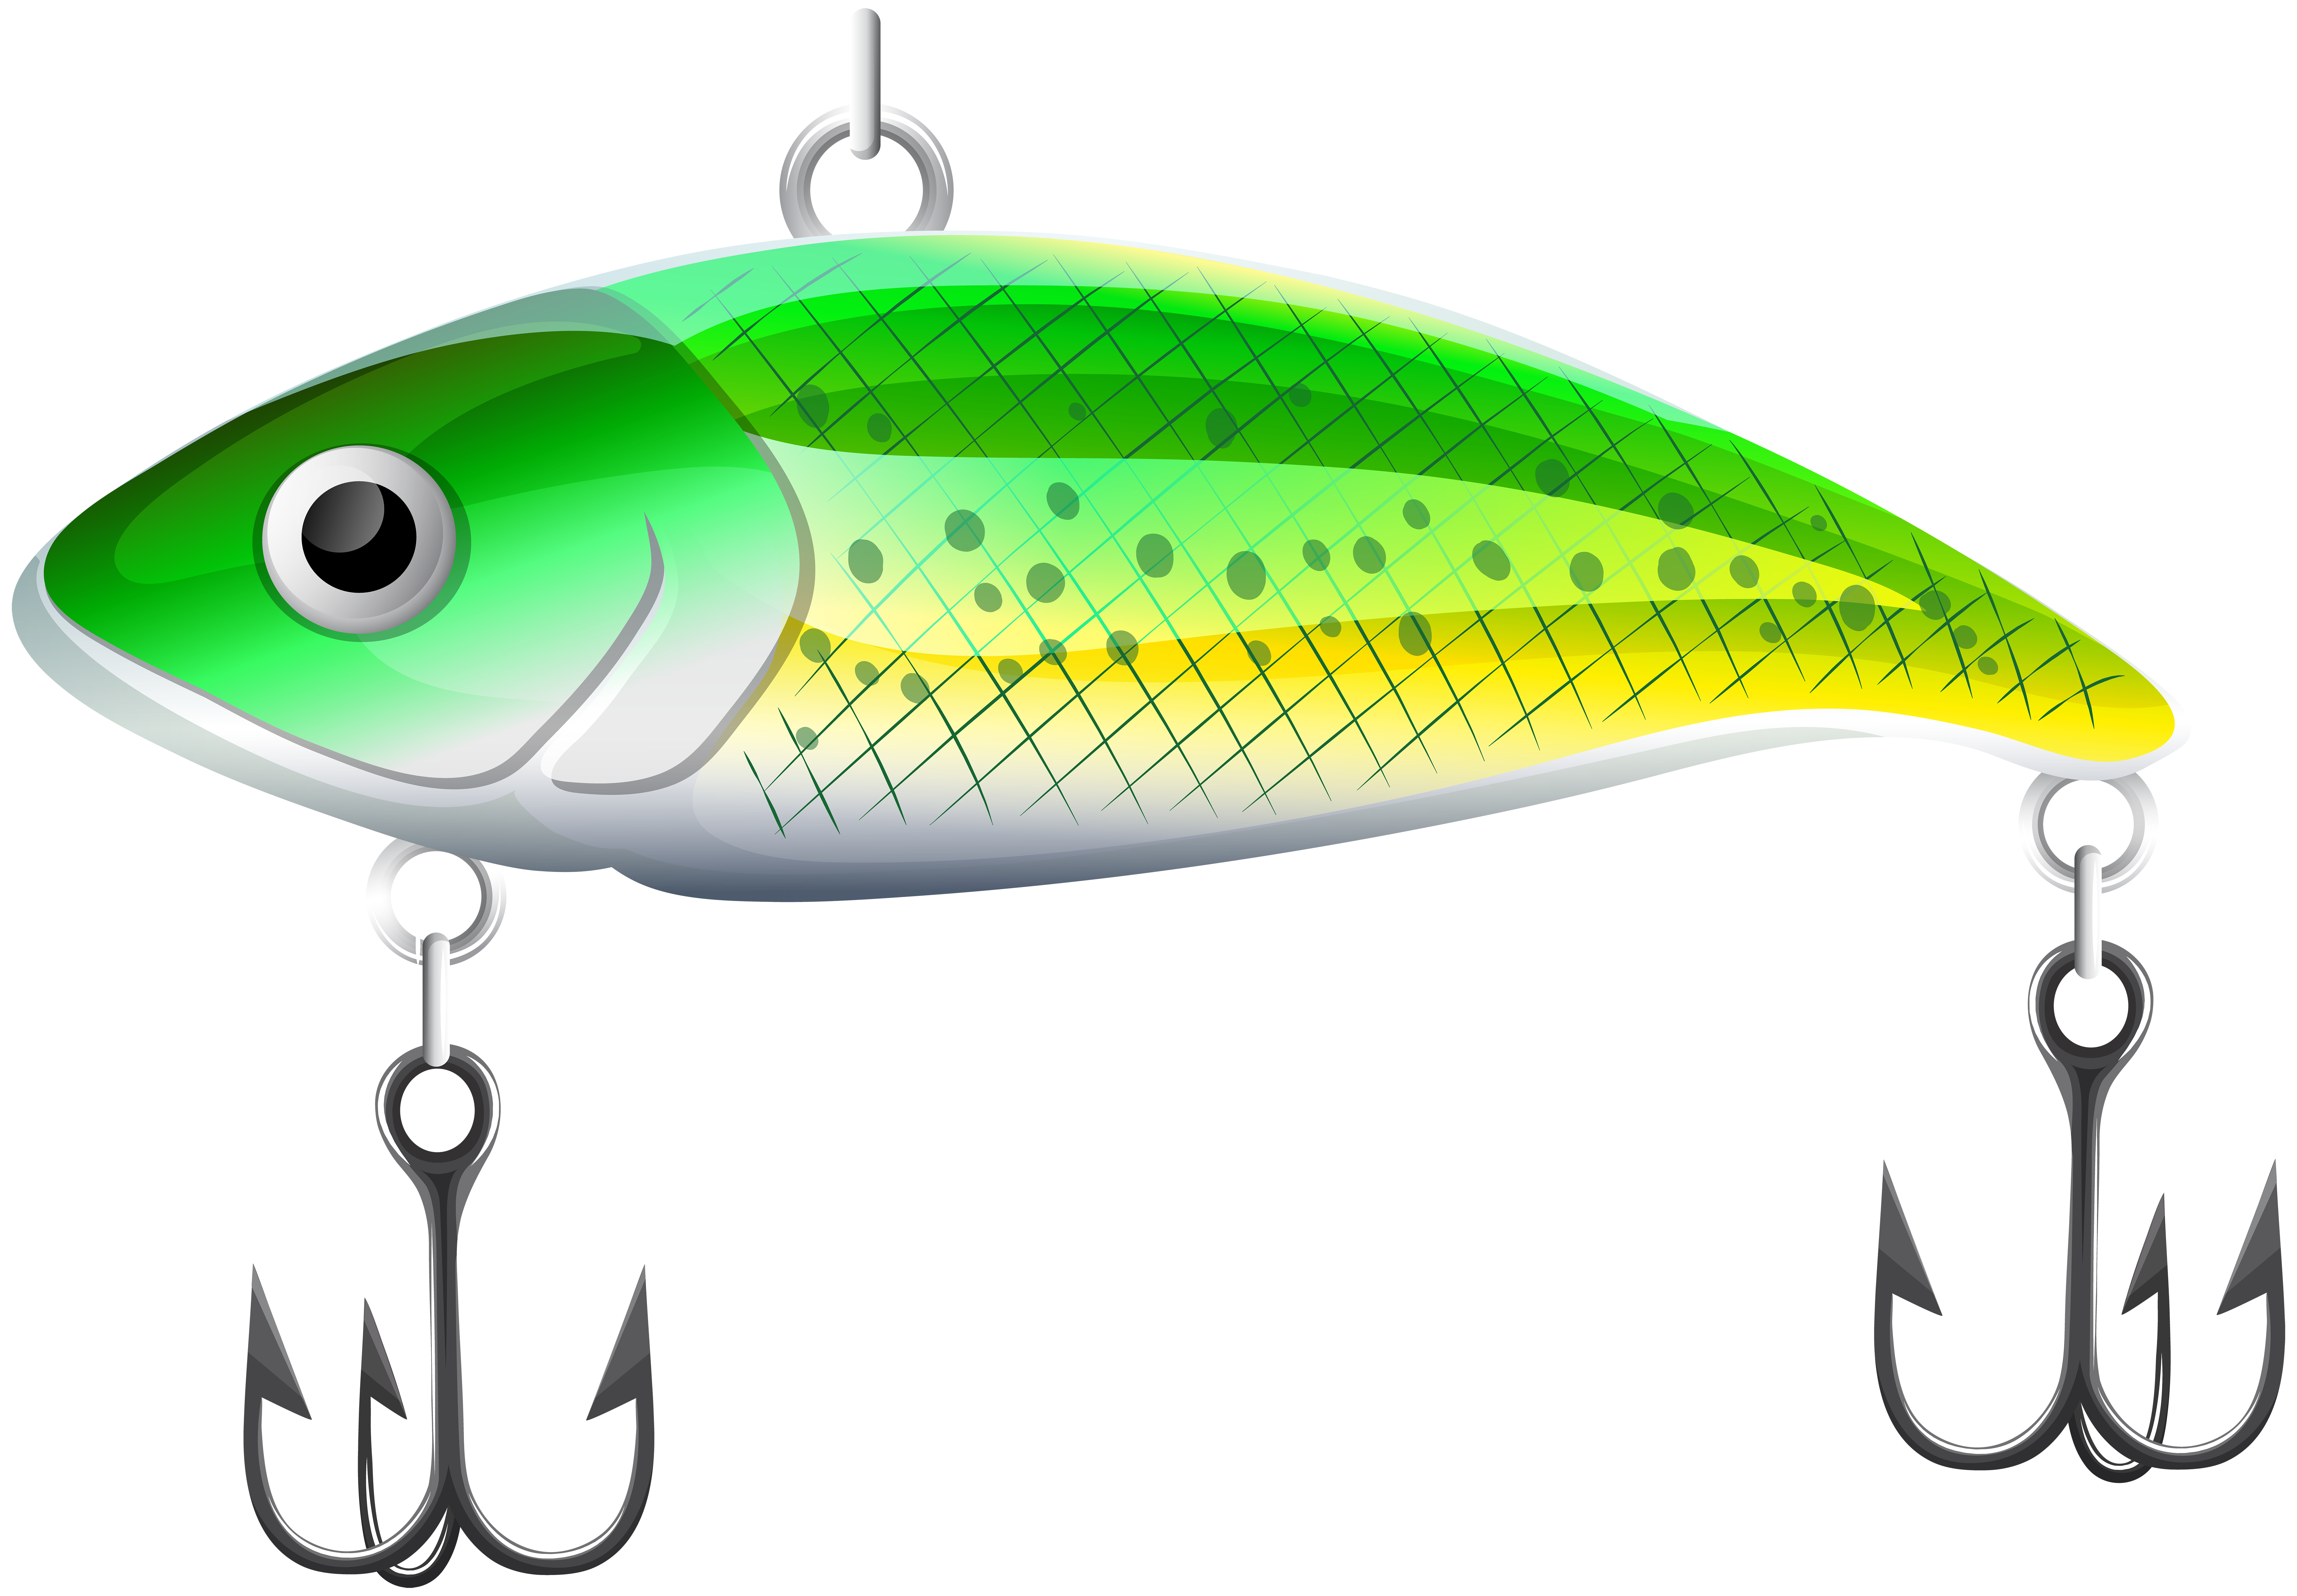 Fish on a plate clipart image freeuse download Fishing Bait Green PNG Clip Art - Best WEB Clipart image freeuse download